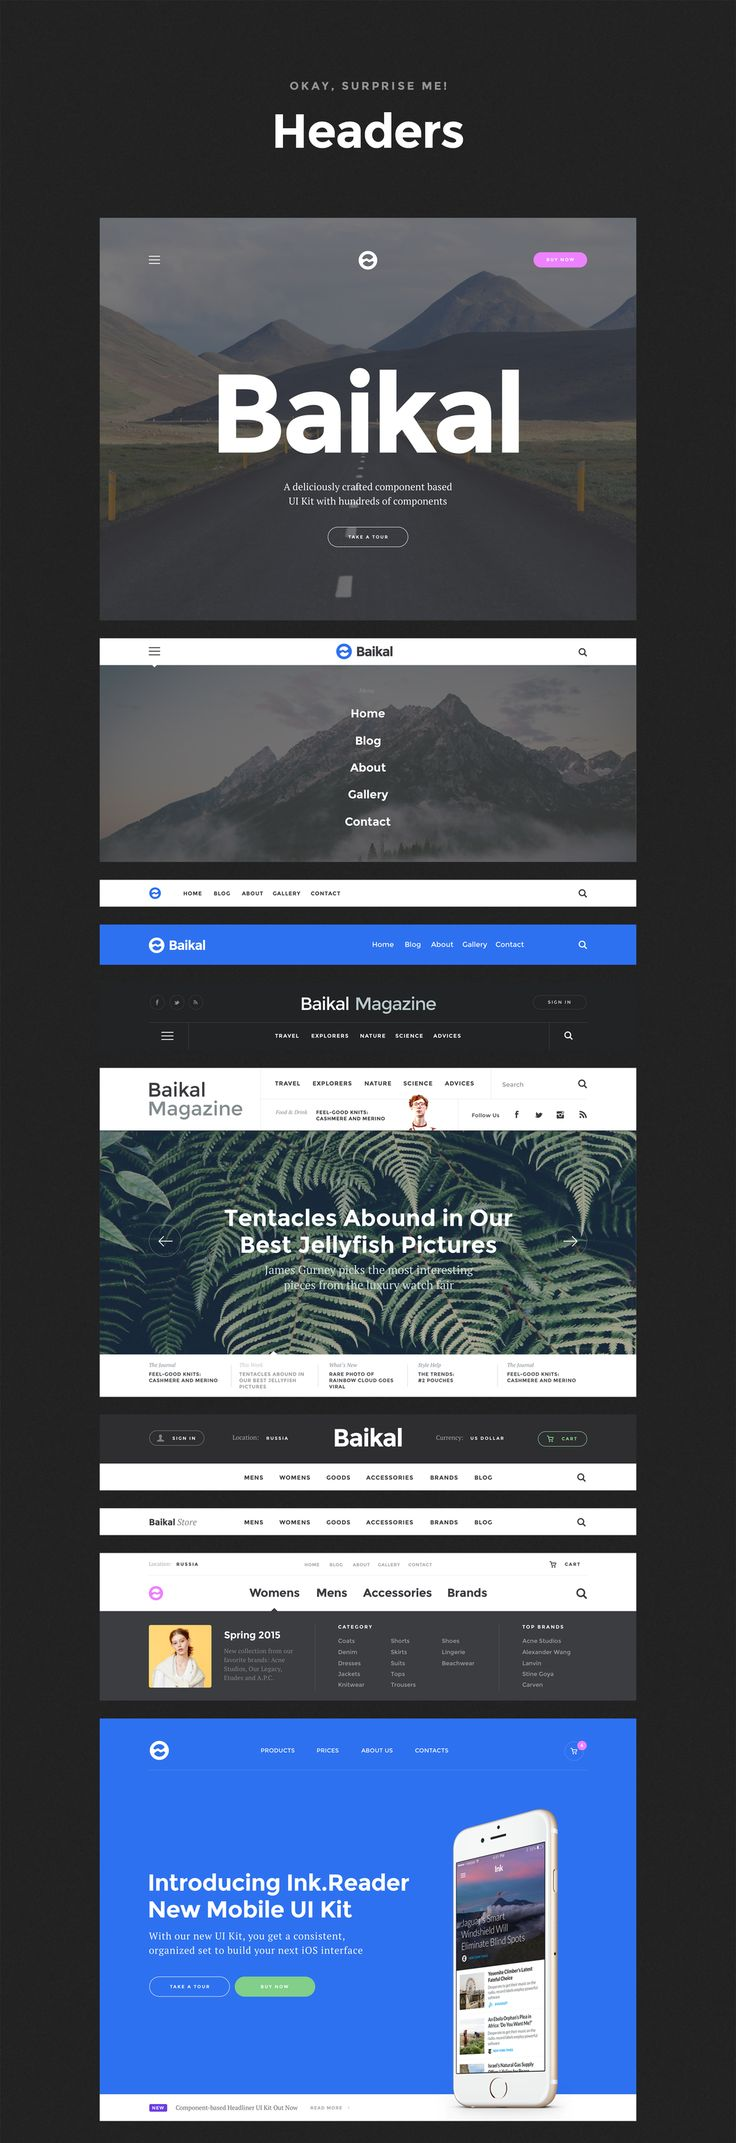 Baikal UI kit – headers